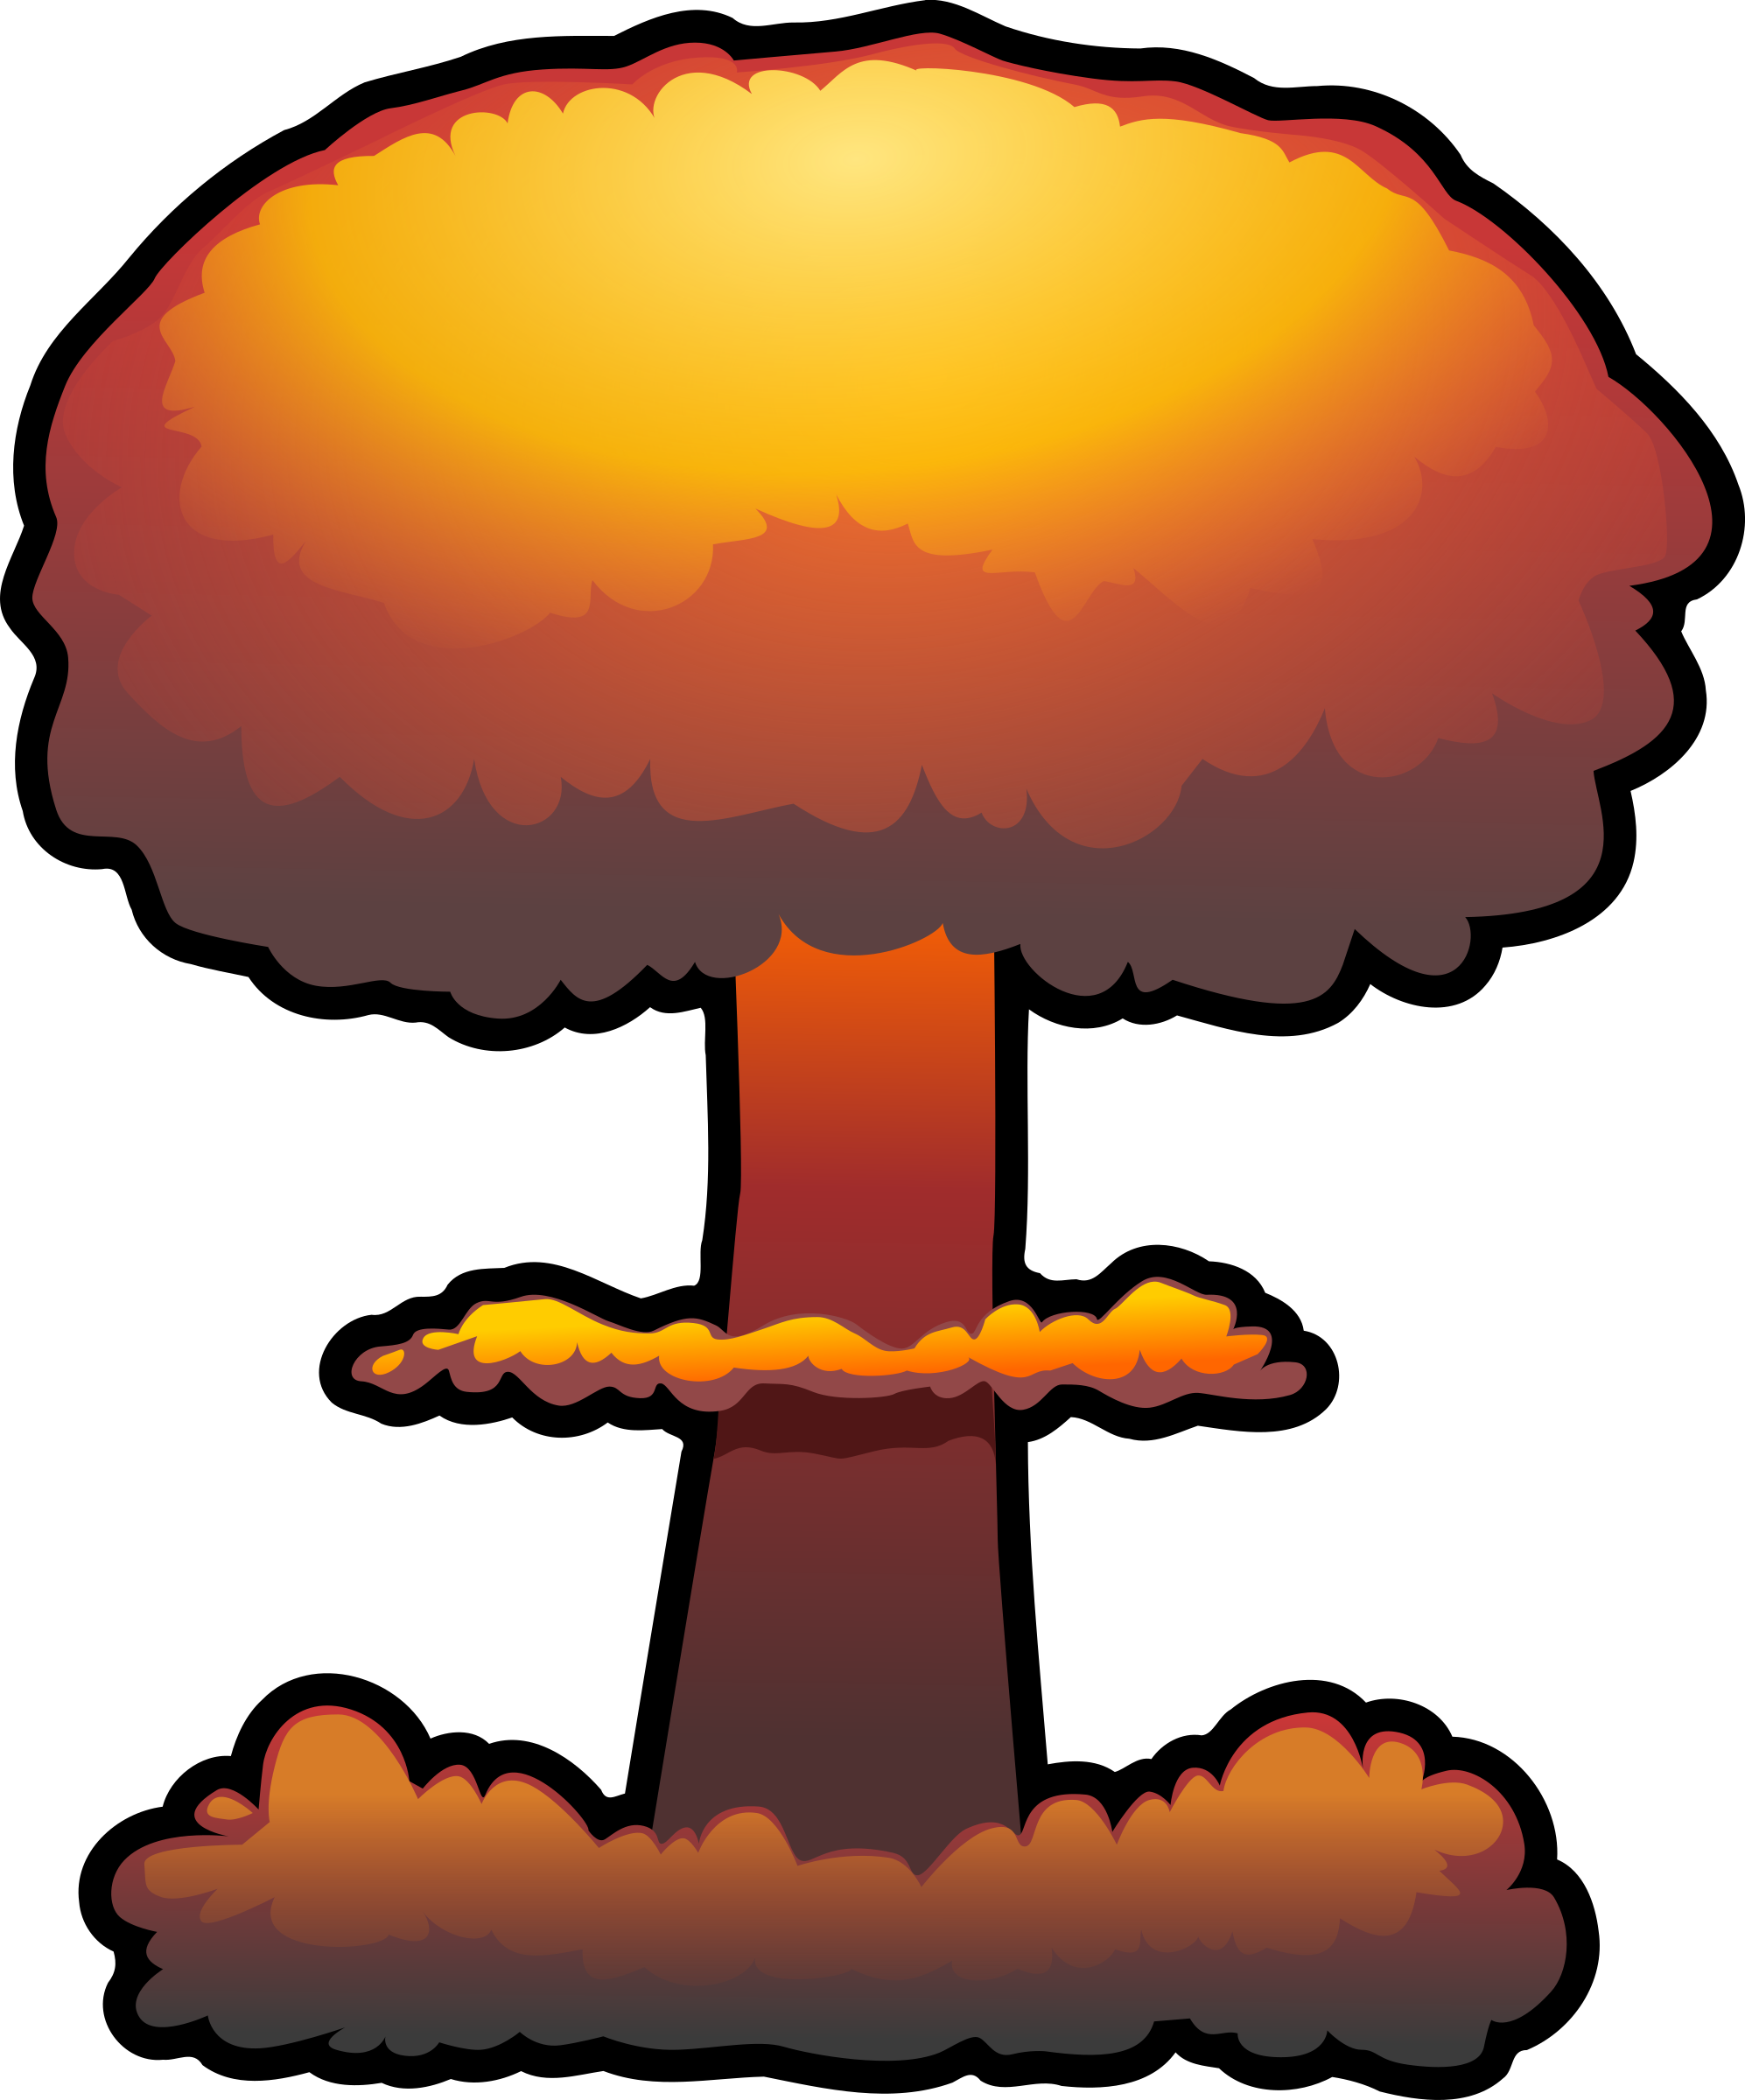 Clipart - nuclear explosion